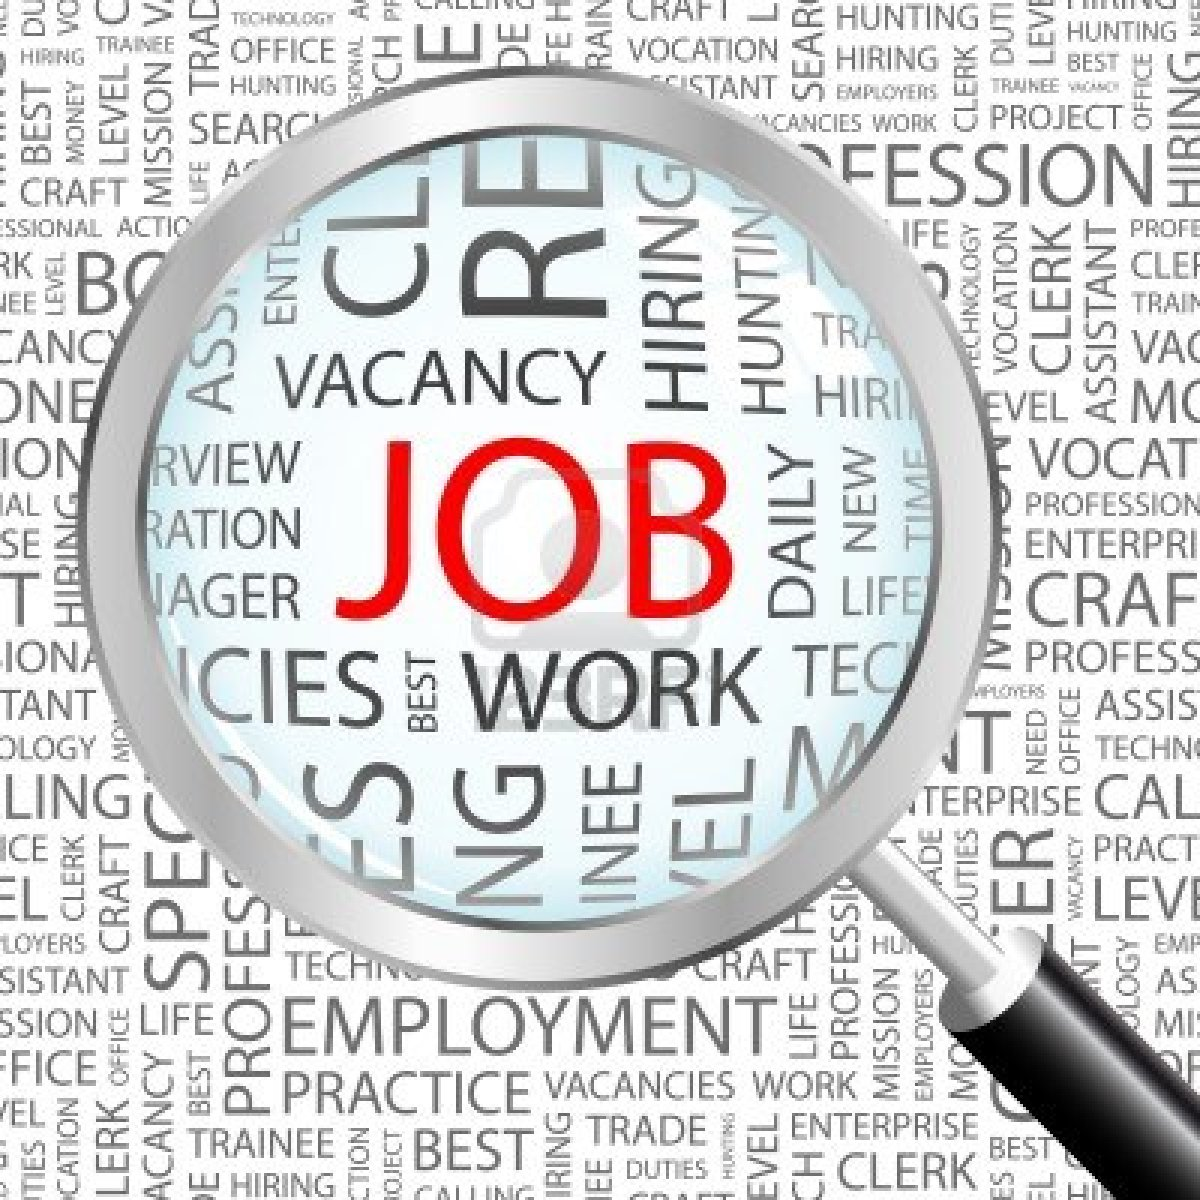 outsourcing advisors job collections